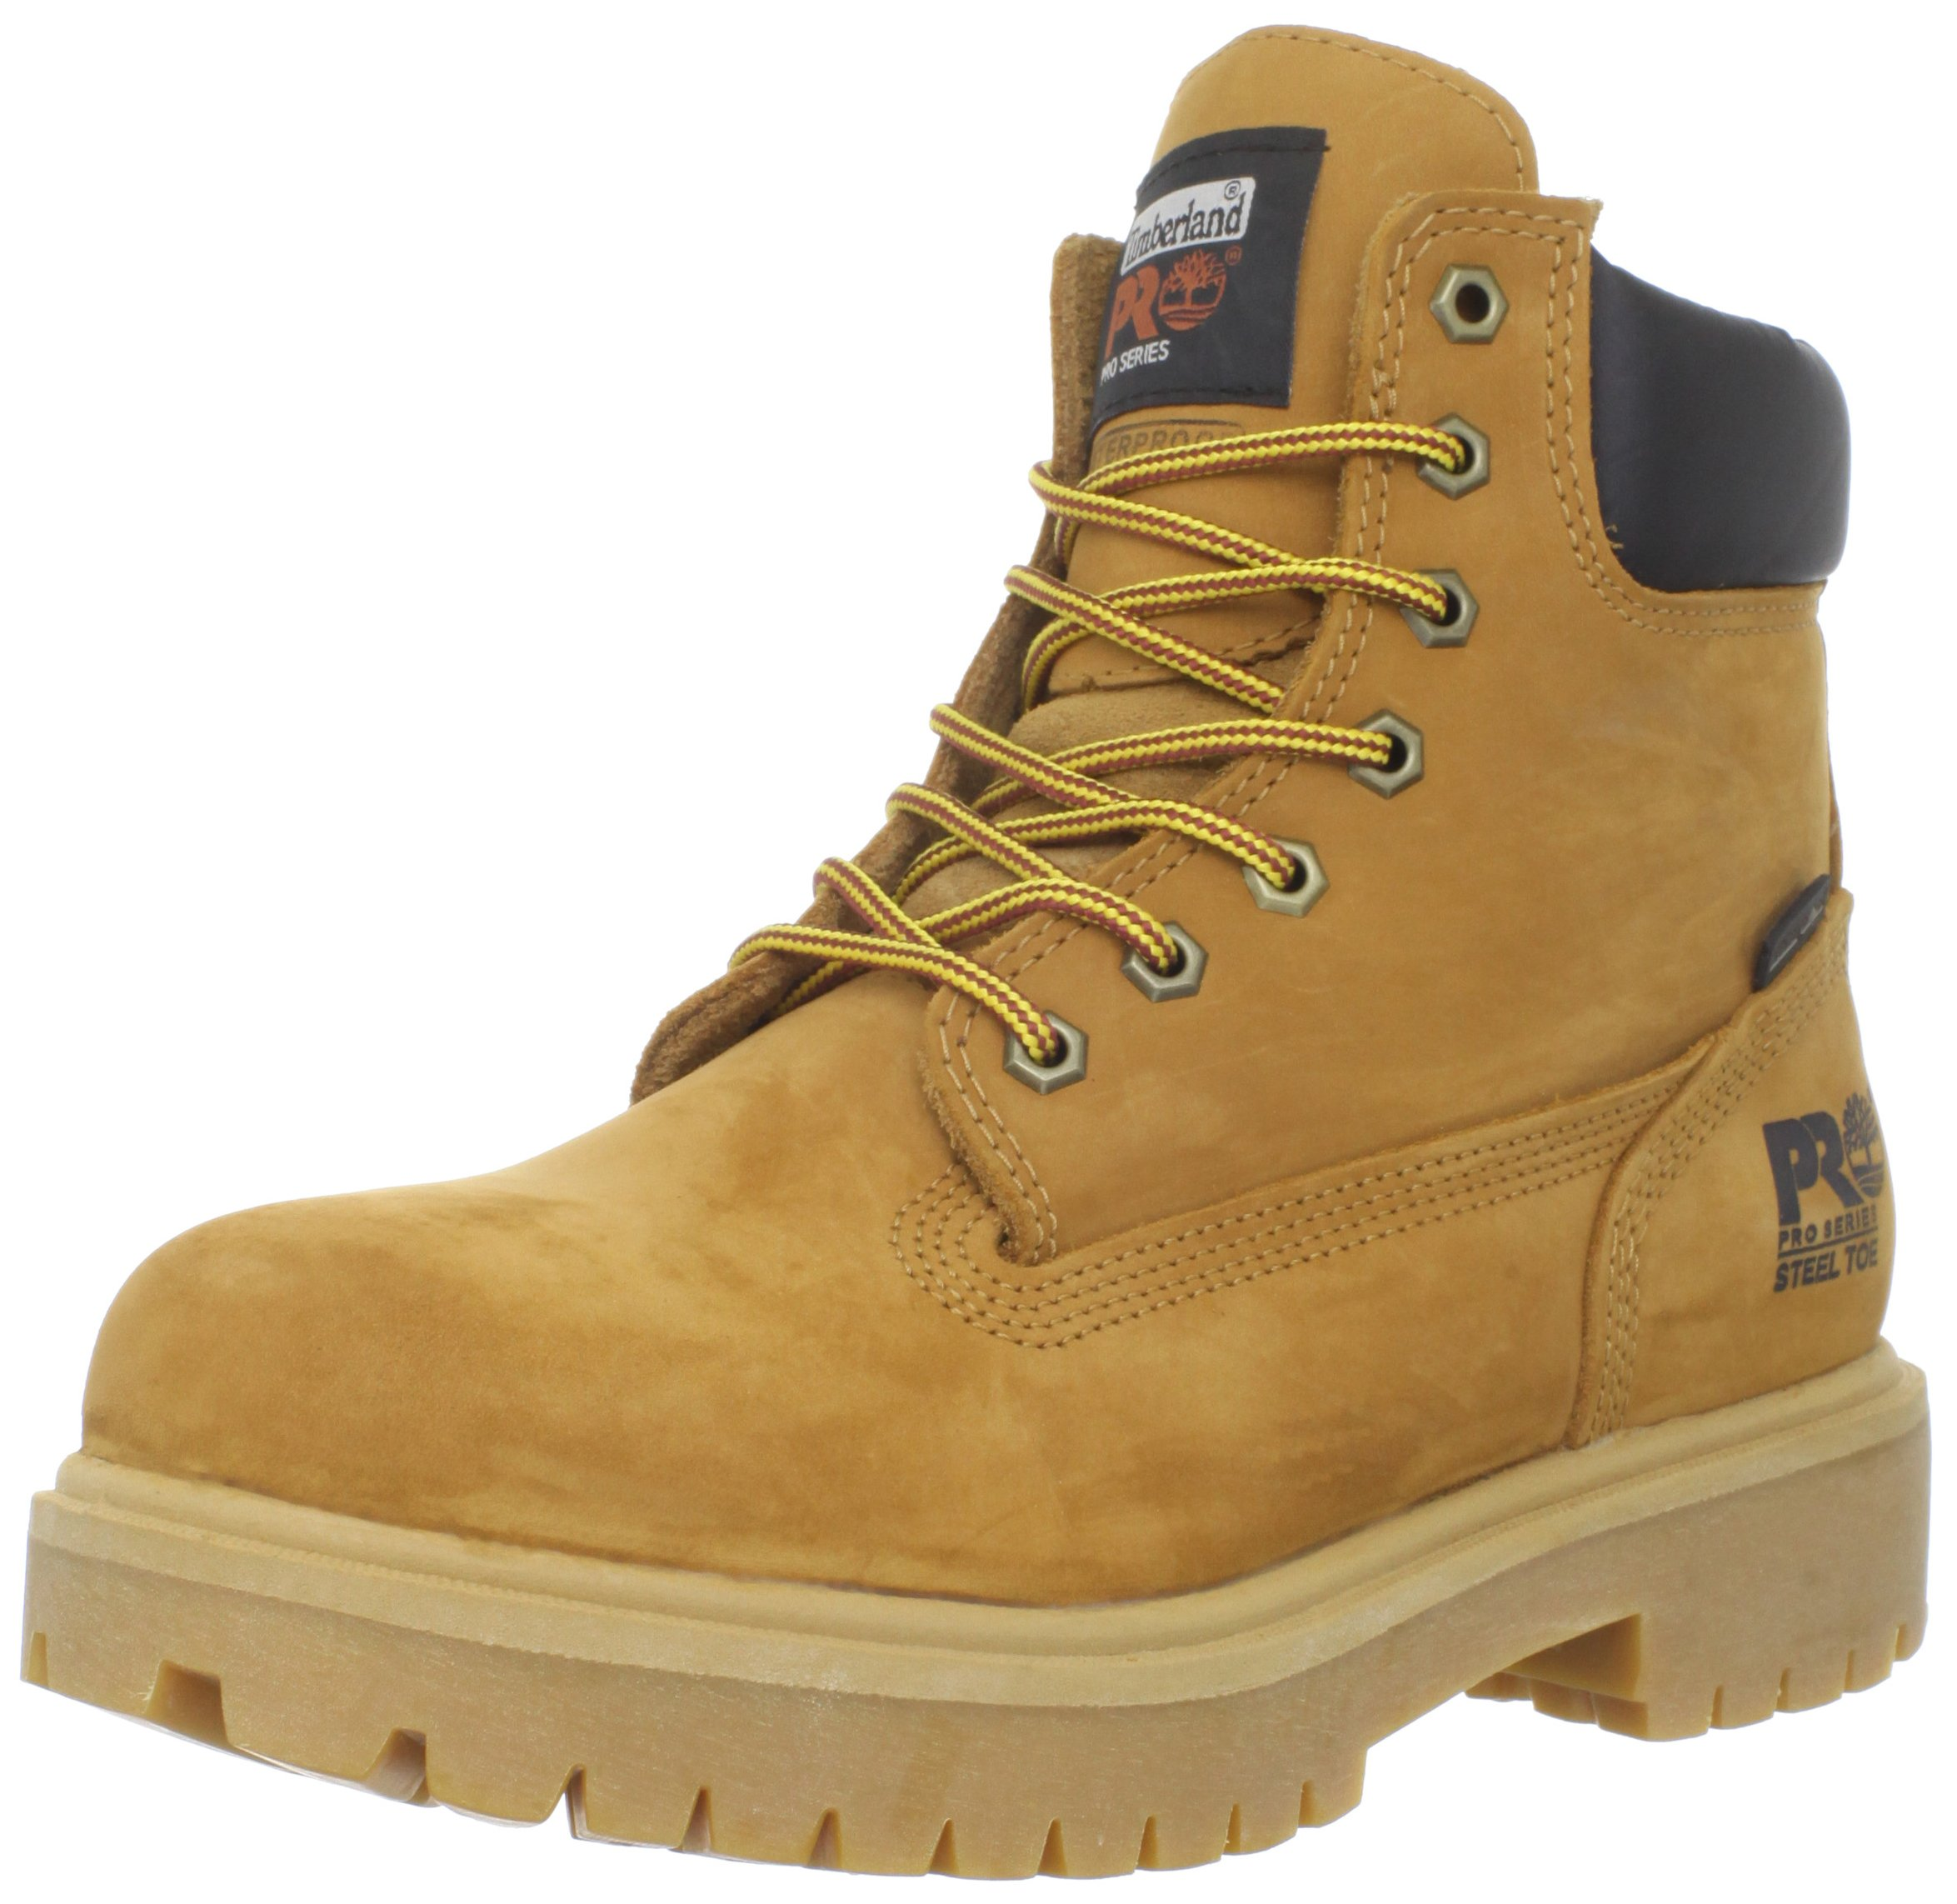 Timberland PRO Men's 65016 Direct Attach 6'' Steel Toe Boot,Yellow,7.5 M